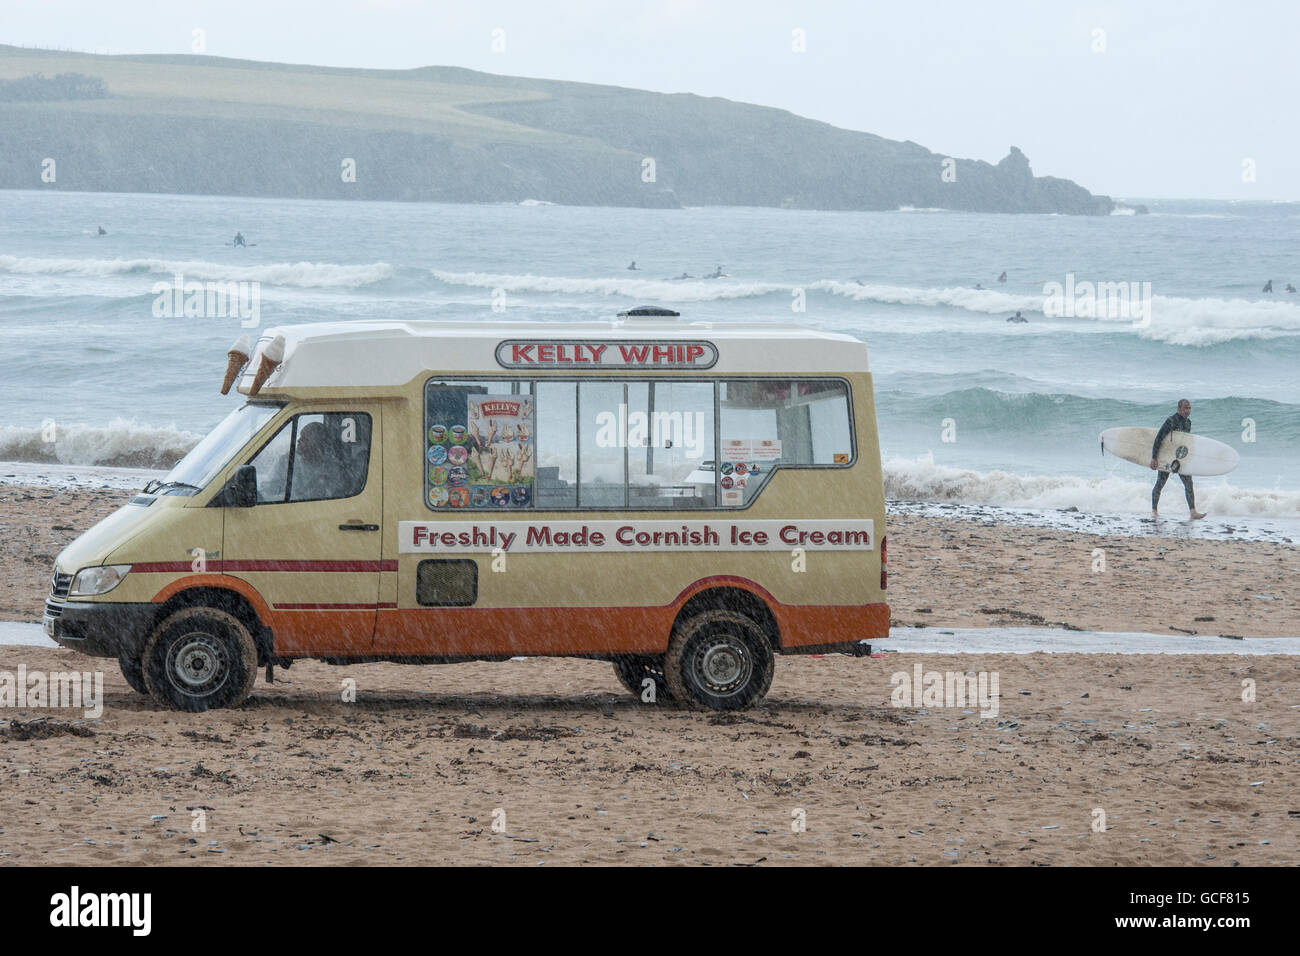 An ice cream van in the pouring rain on a beach in Cornwall - Stock Image